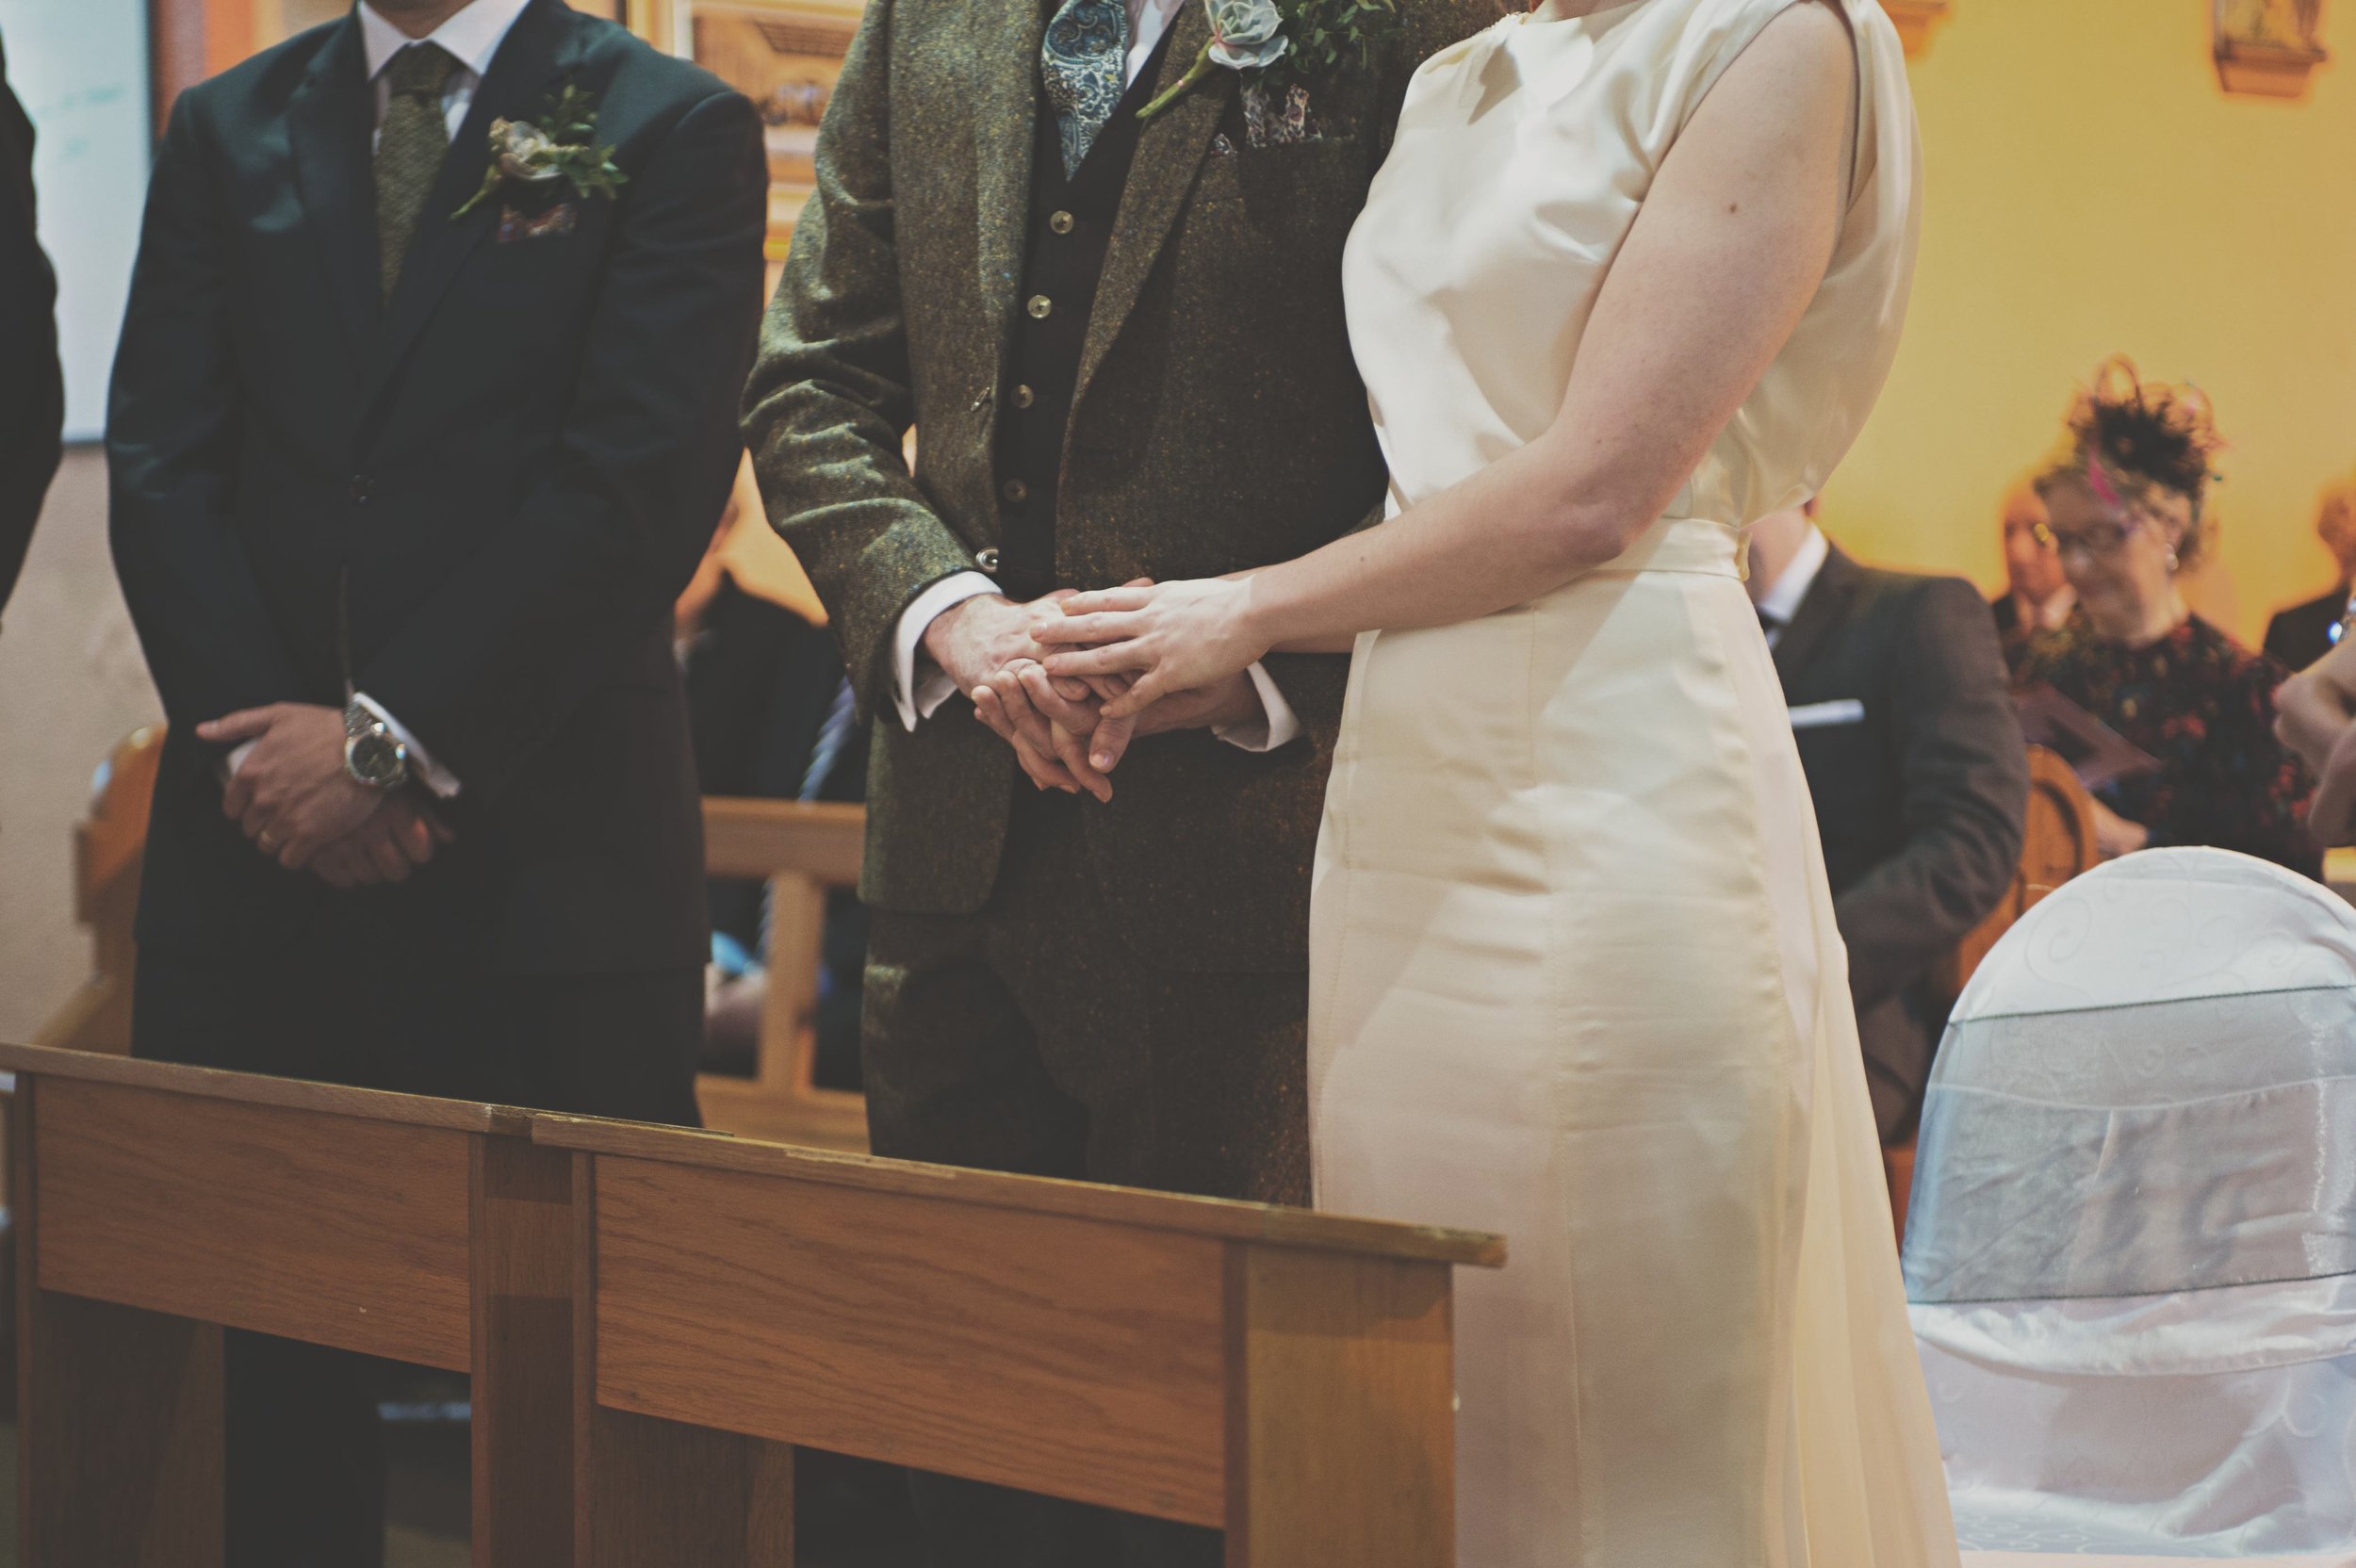 Holding hands at wedding service